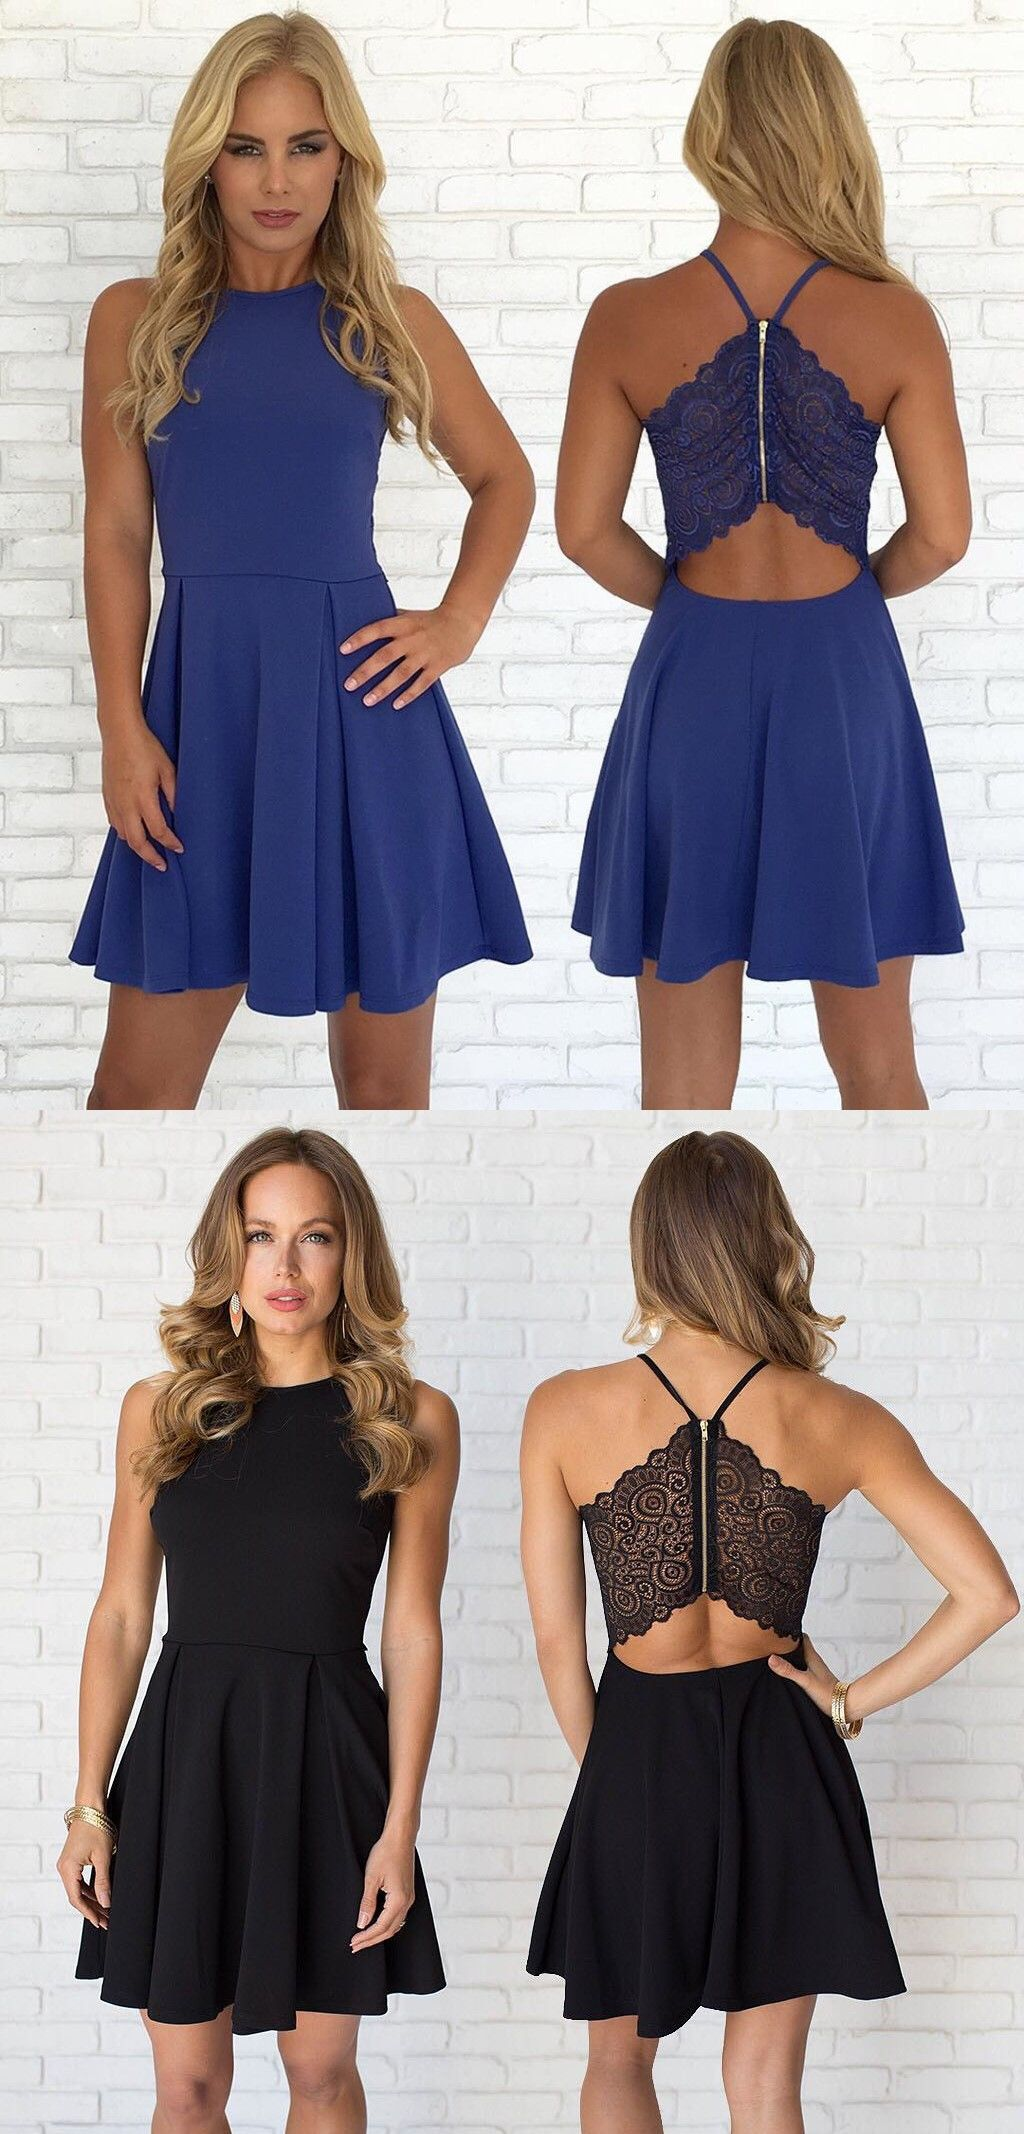 Short royal blue chiffon homecoming dress from modsele future